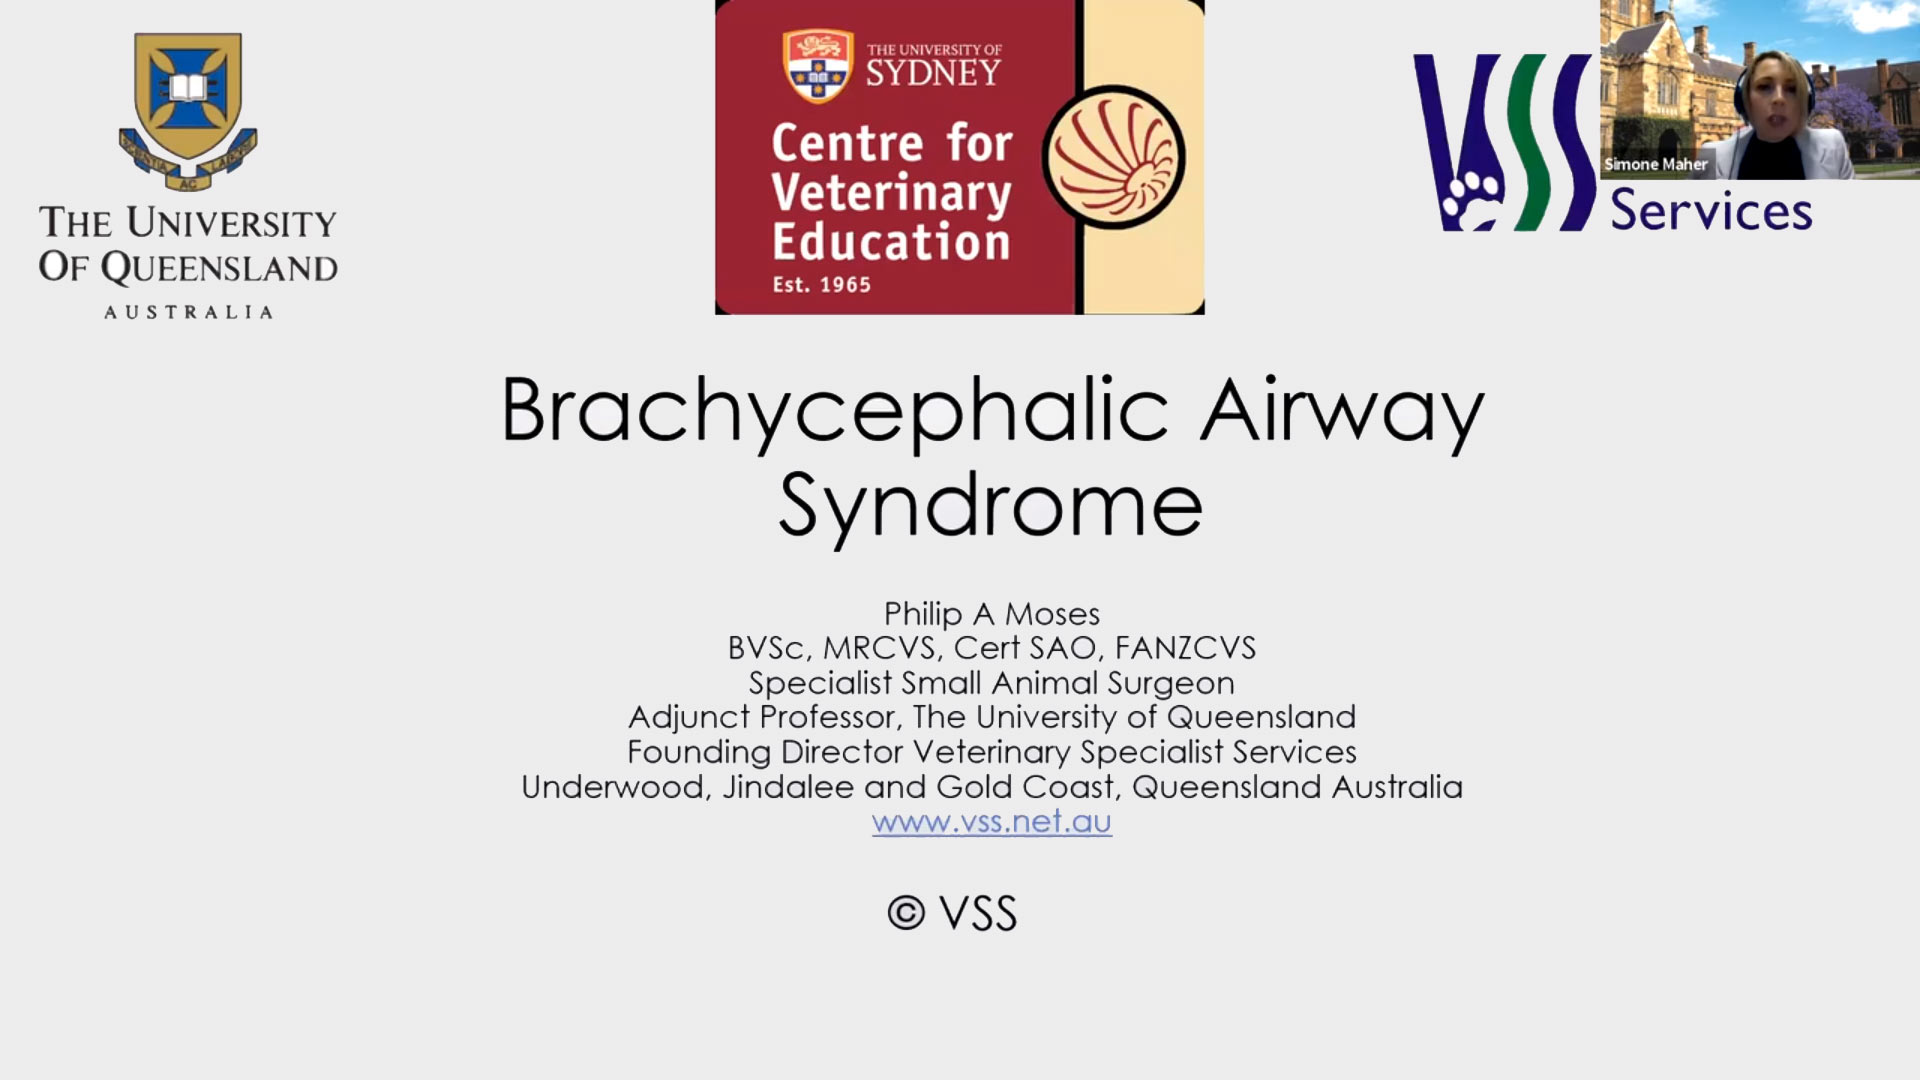 Brachycephalic Airway Syndrome